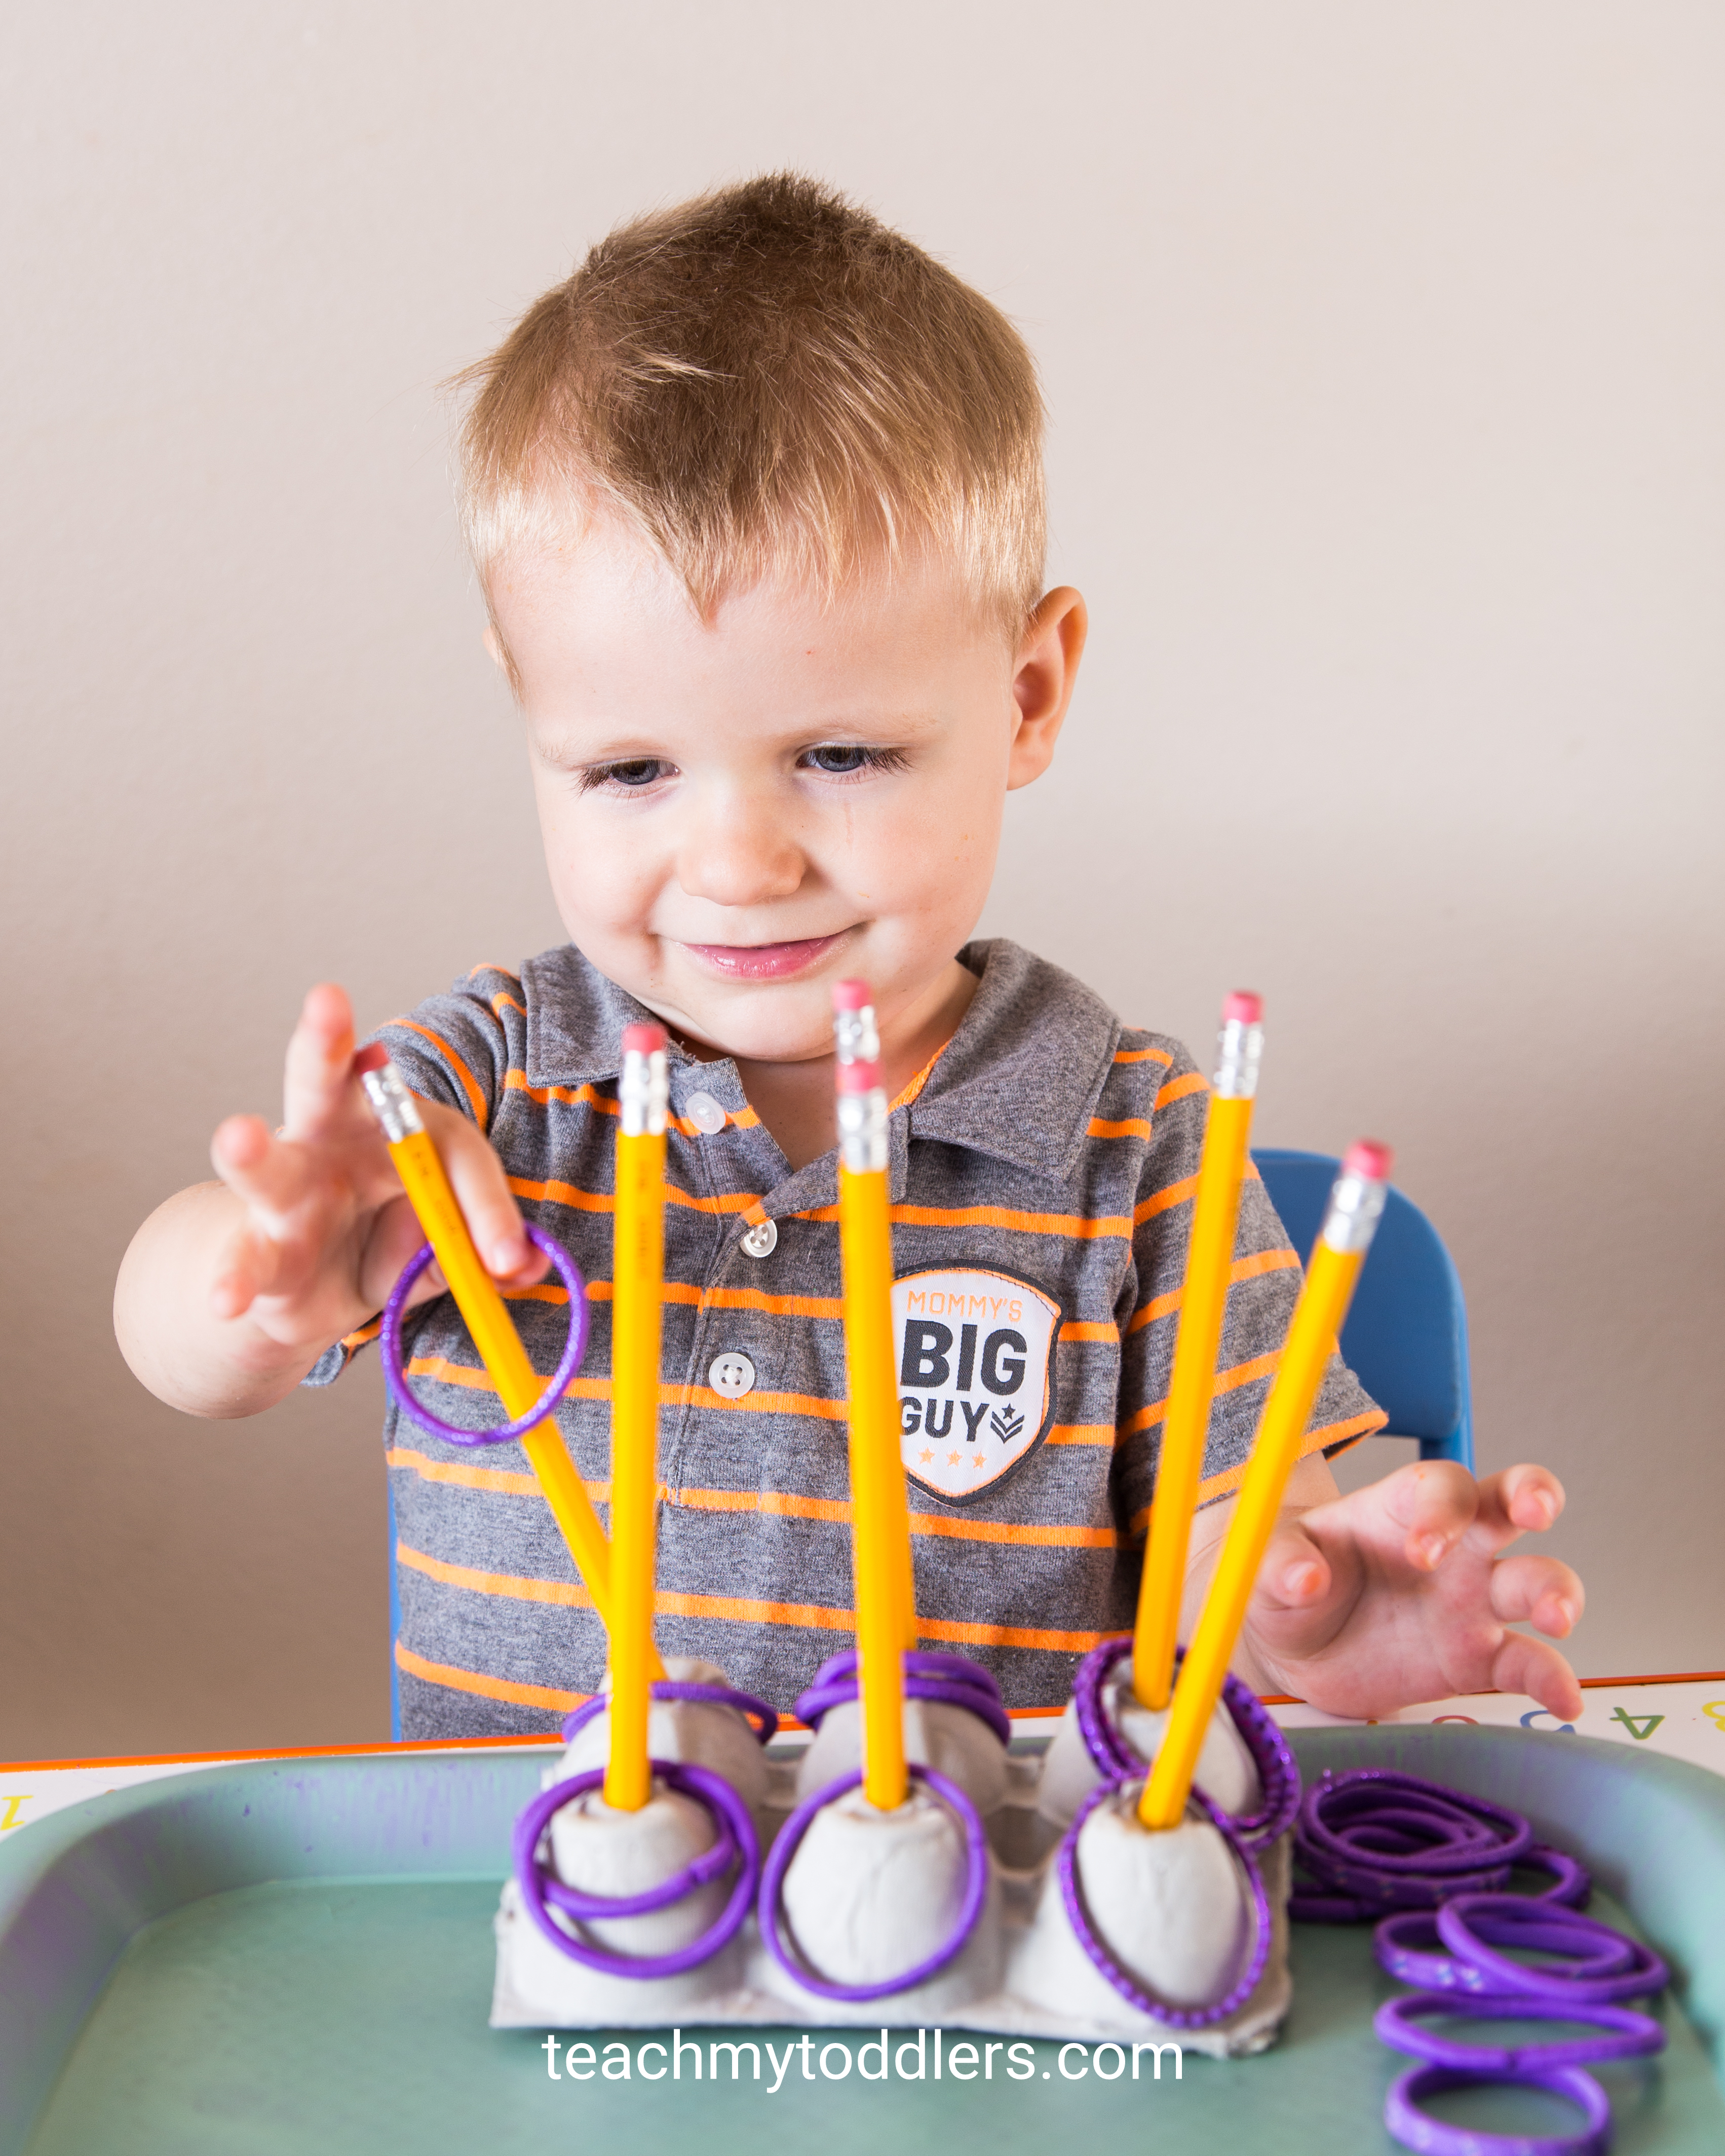 Find out how to teach toddlers the color purple with these tot tray activities